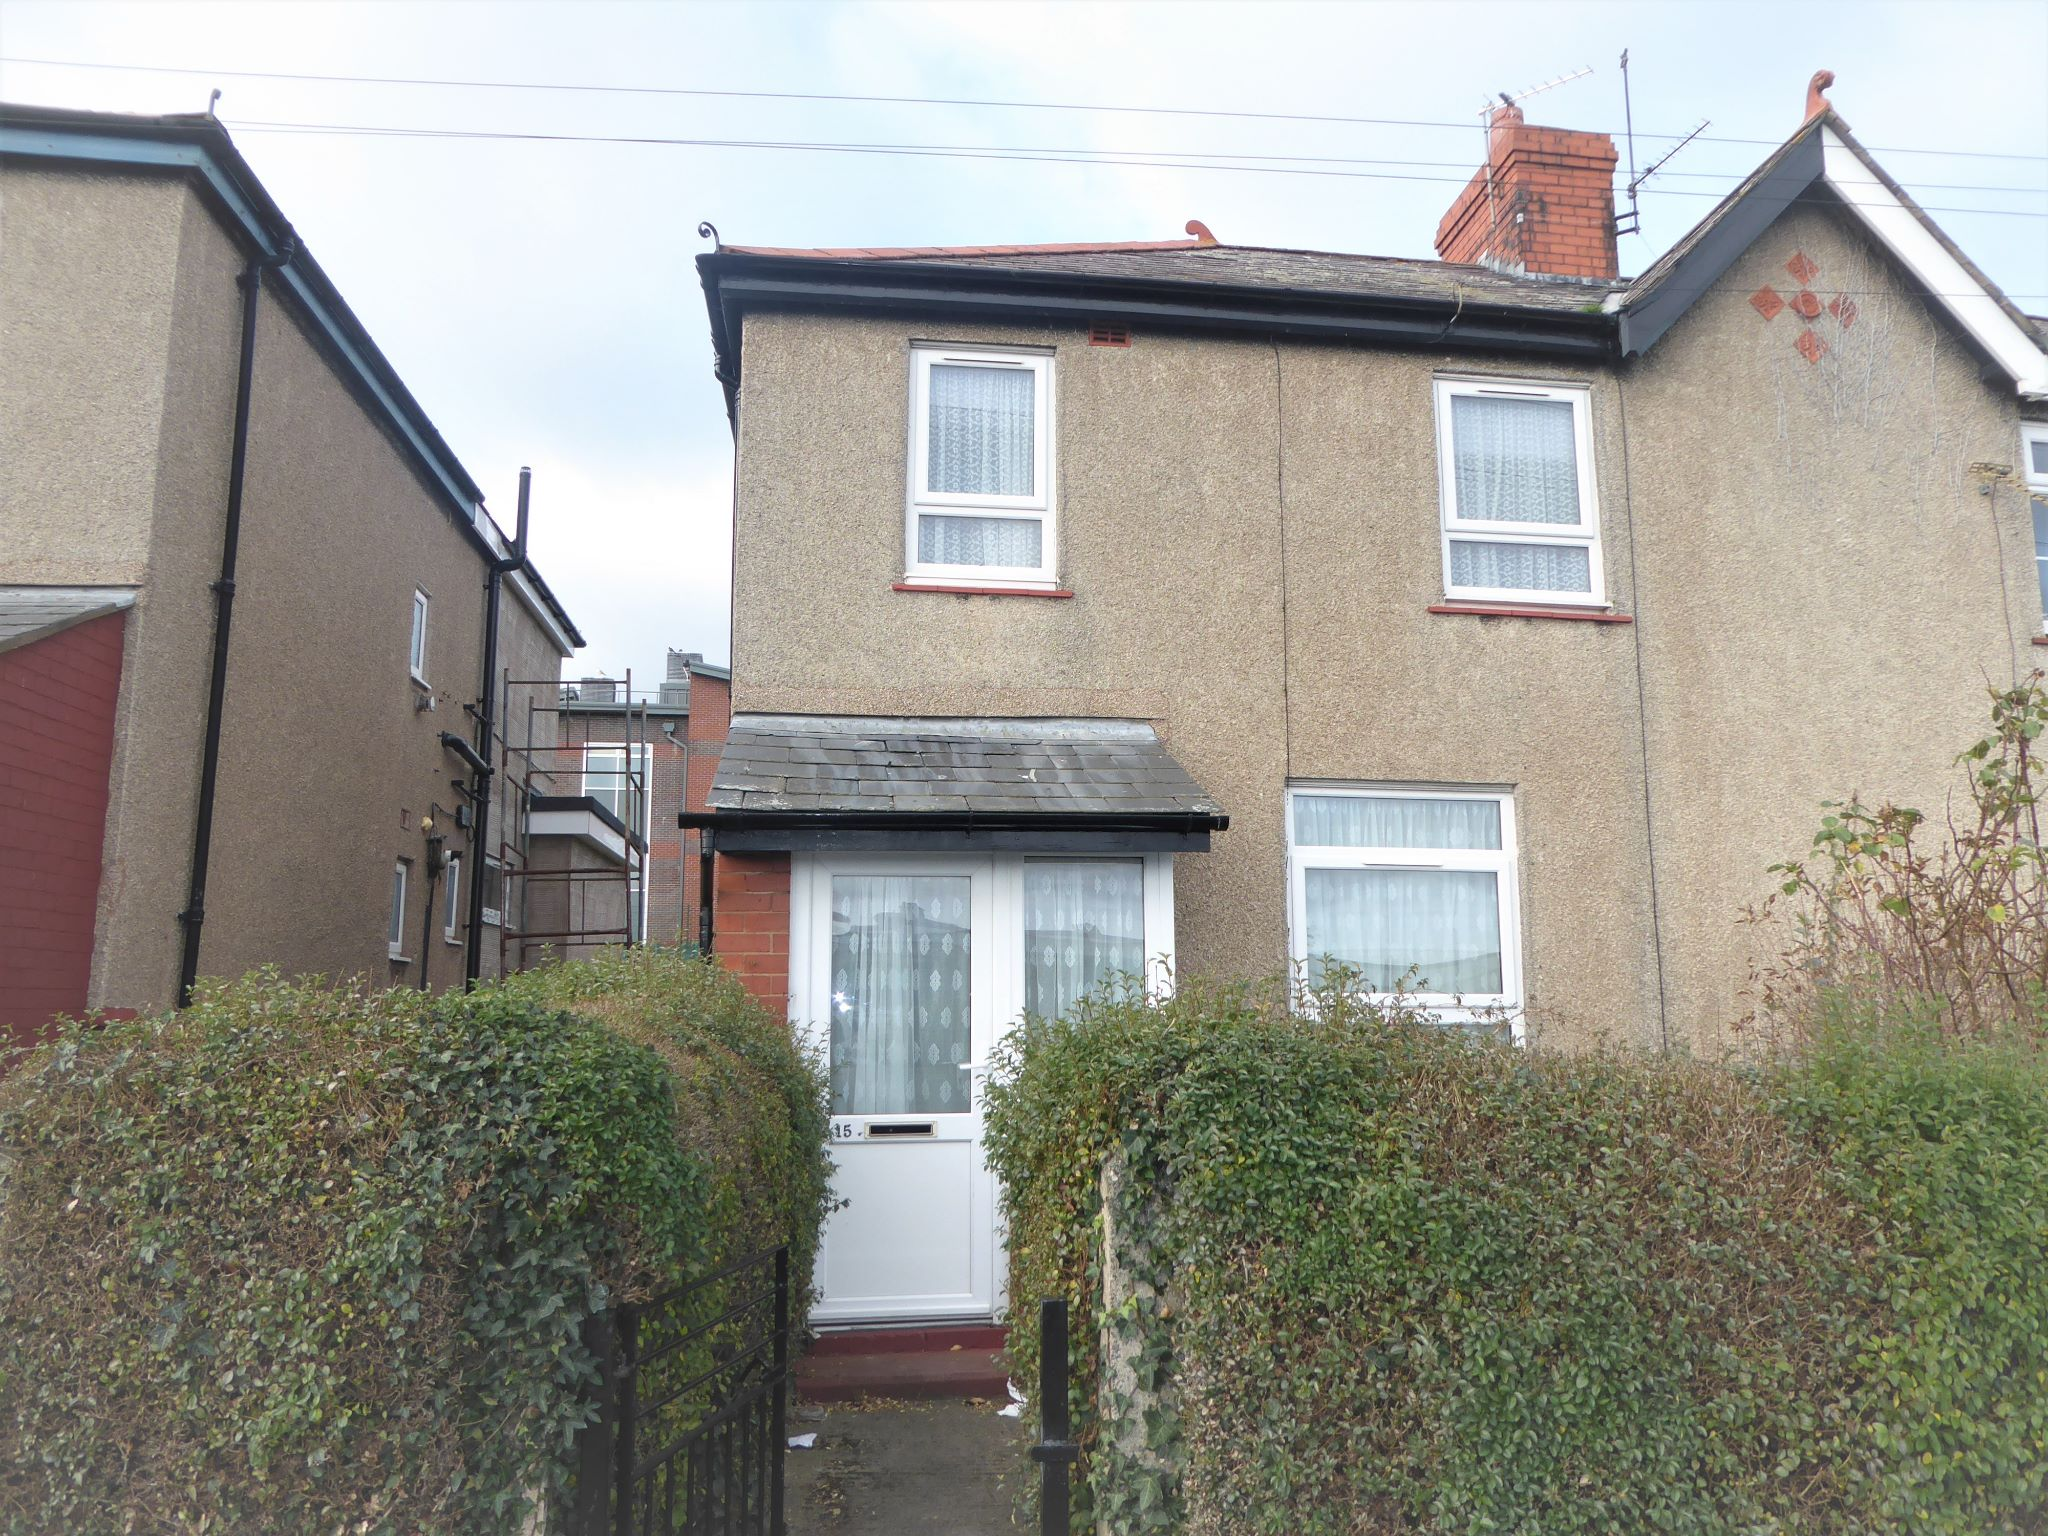 3 bedroom end terraced house SSTC in Abergele - Photograph 1